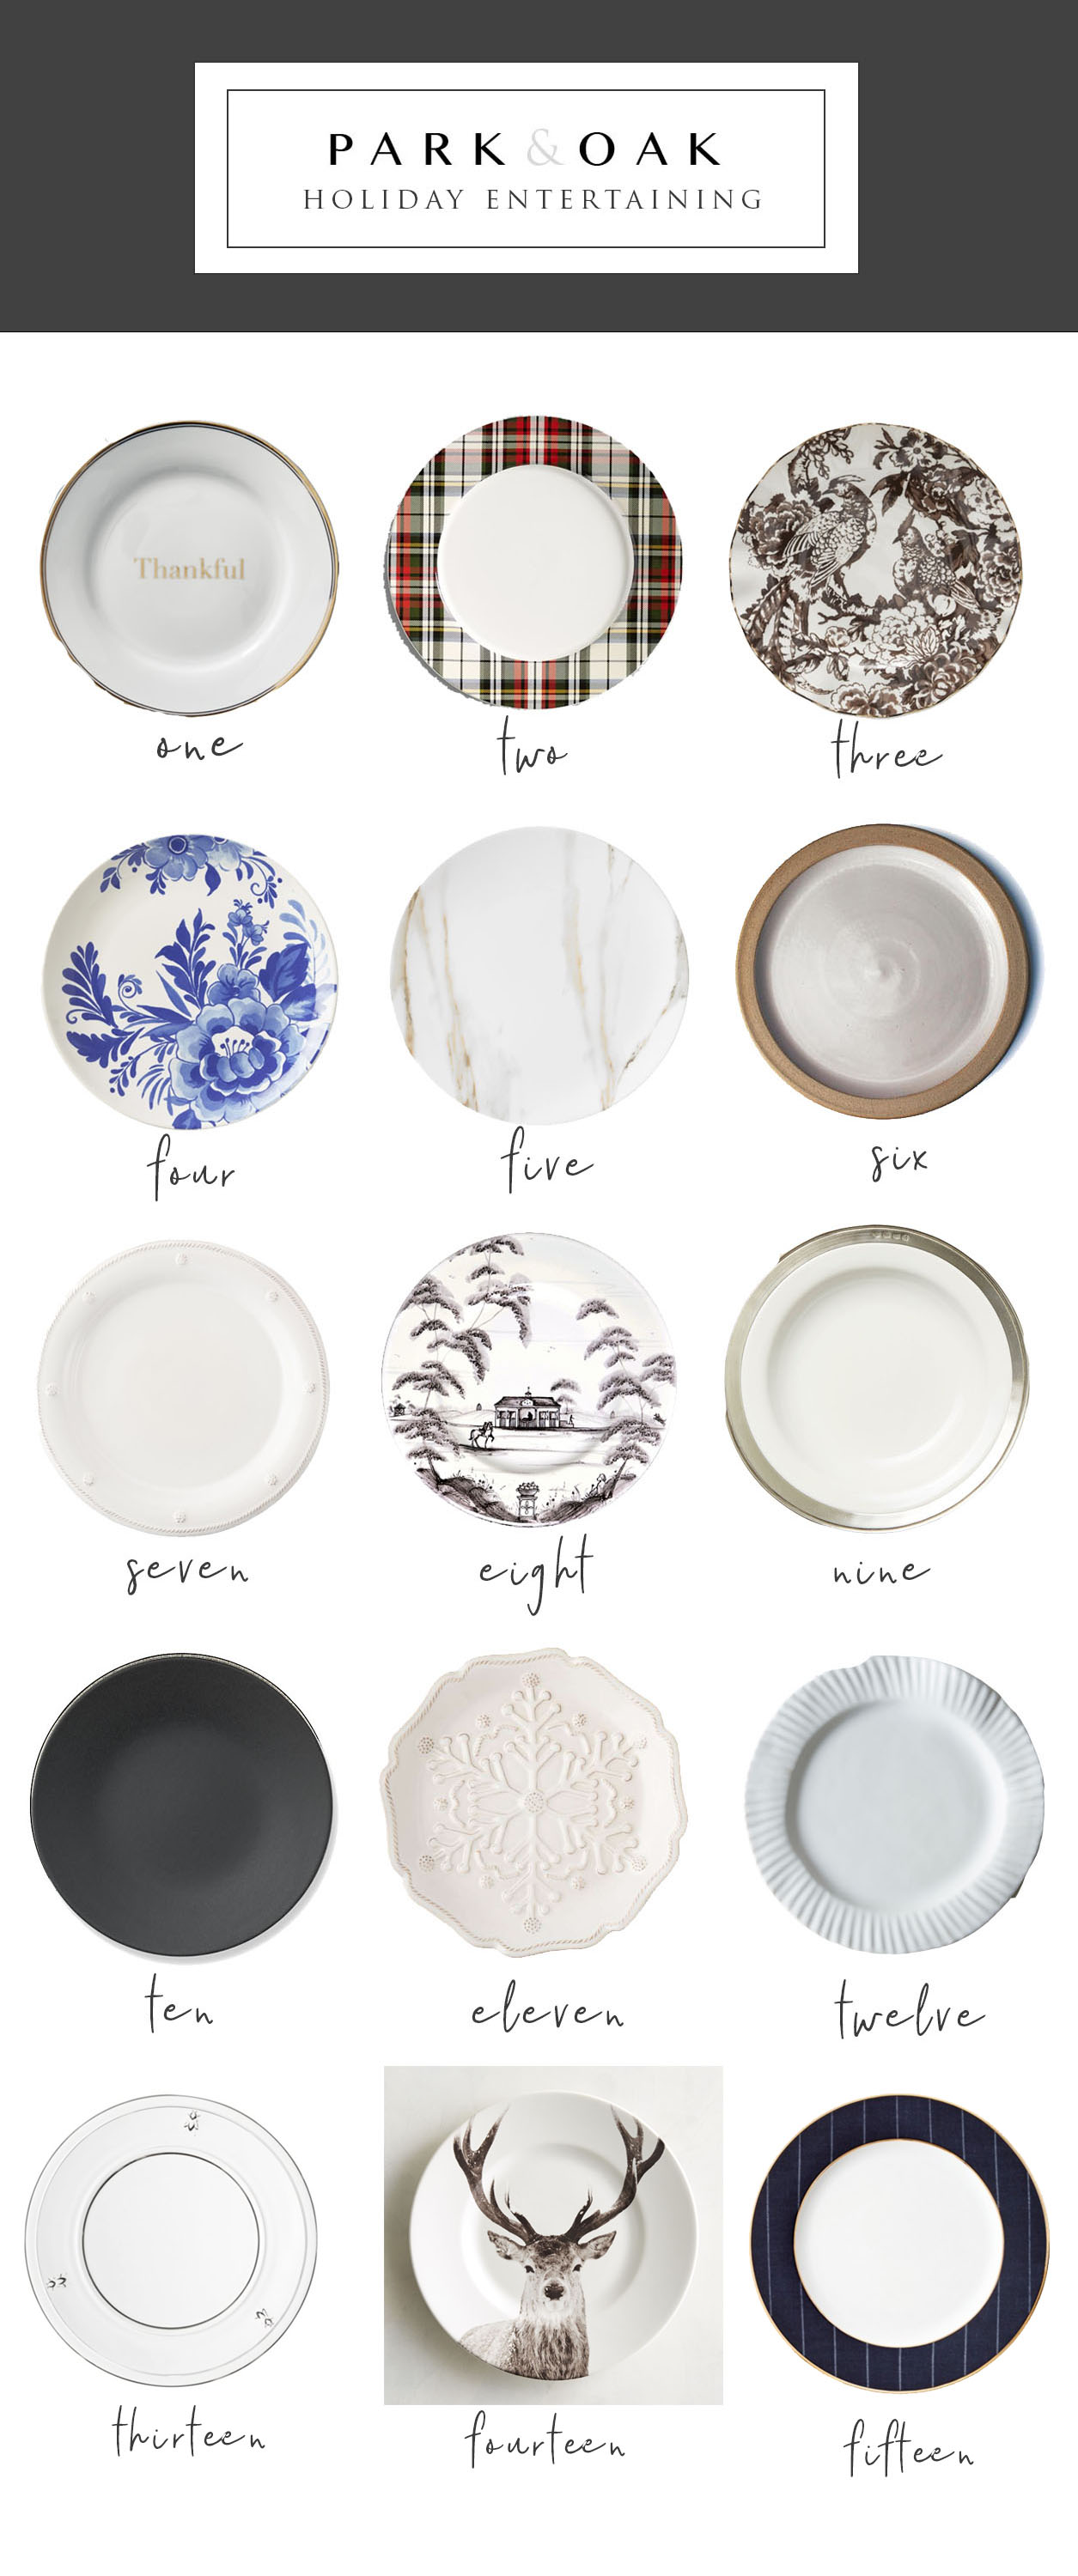 Park and Oak holiday entertaining - plates